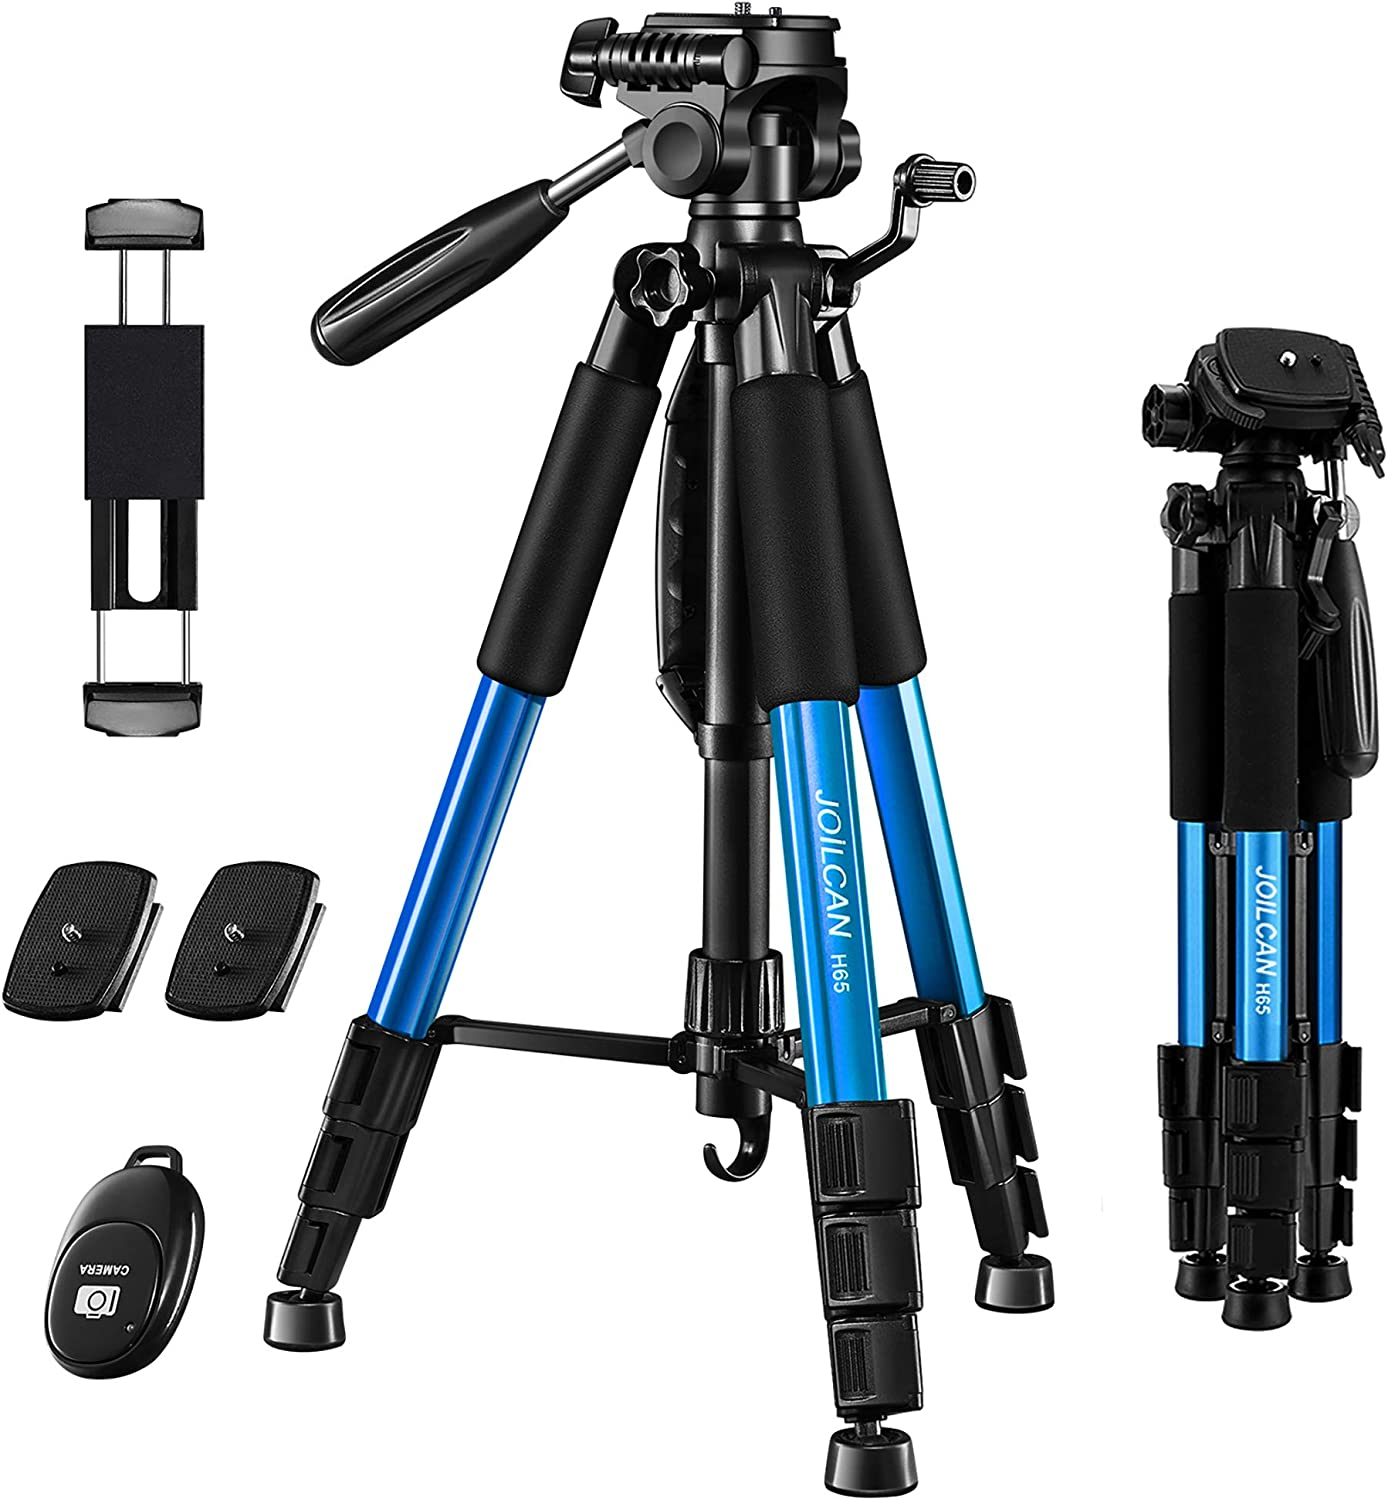 Red Digital Cinema Scarlet X Camcorder Tripod Folding Table-Top Tripod for Compact Digital Cameras and Camcorders Approx 5 H